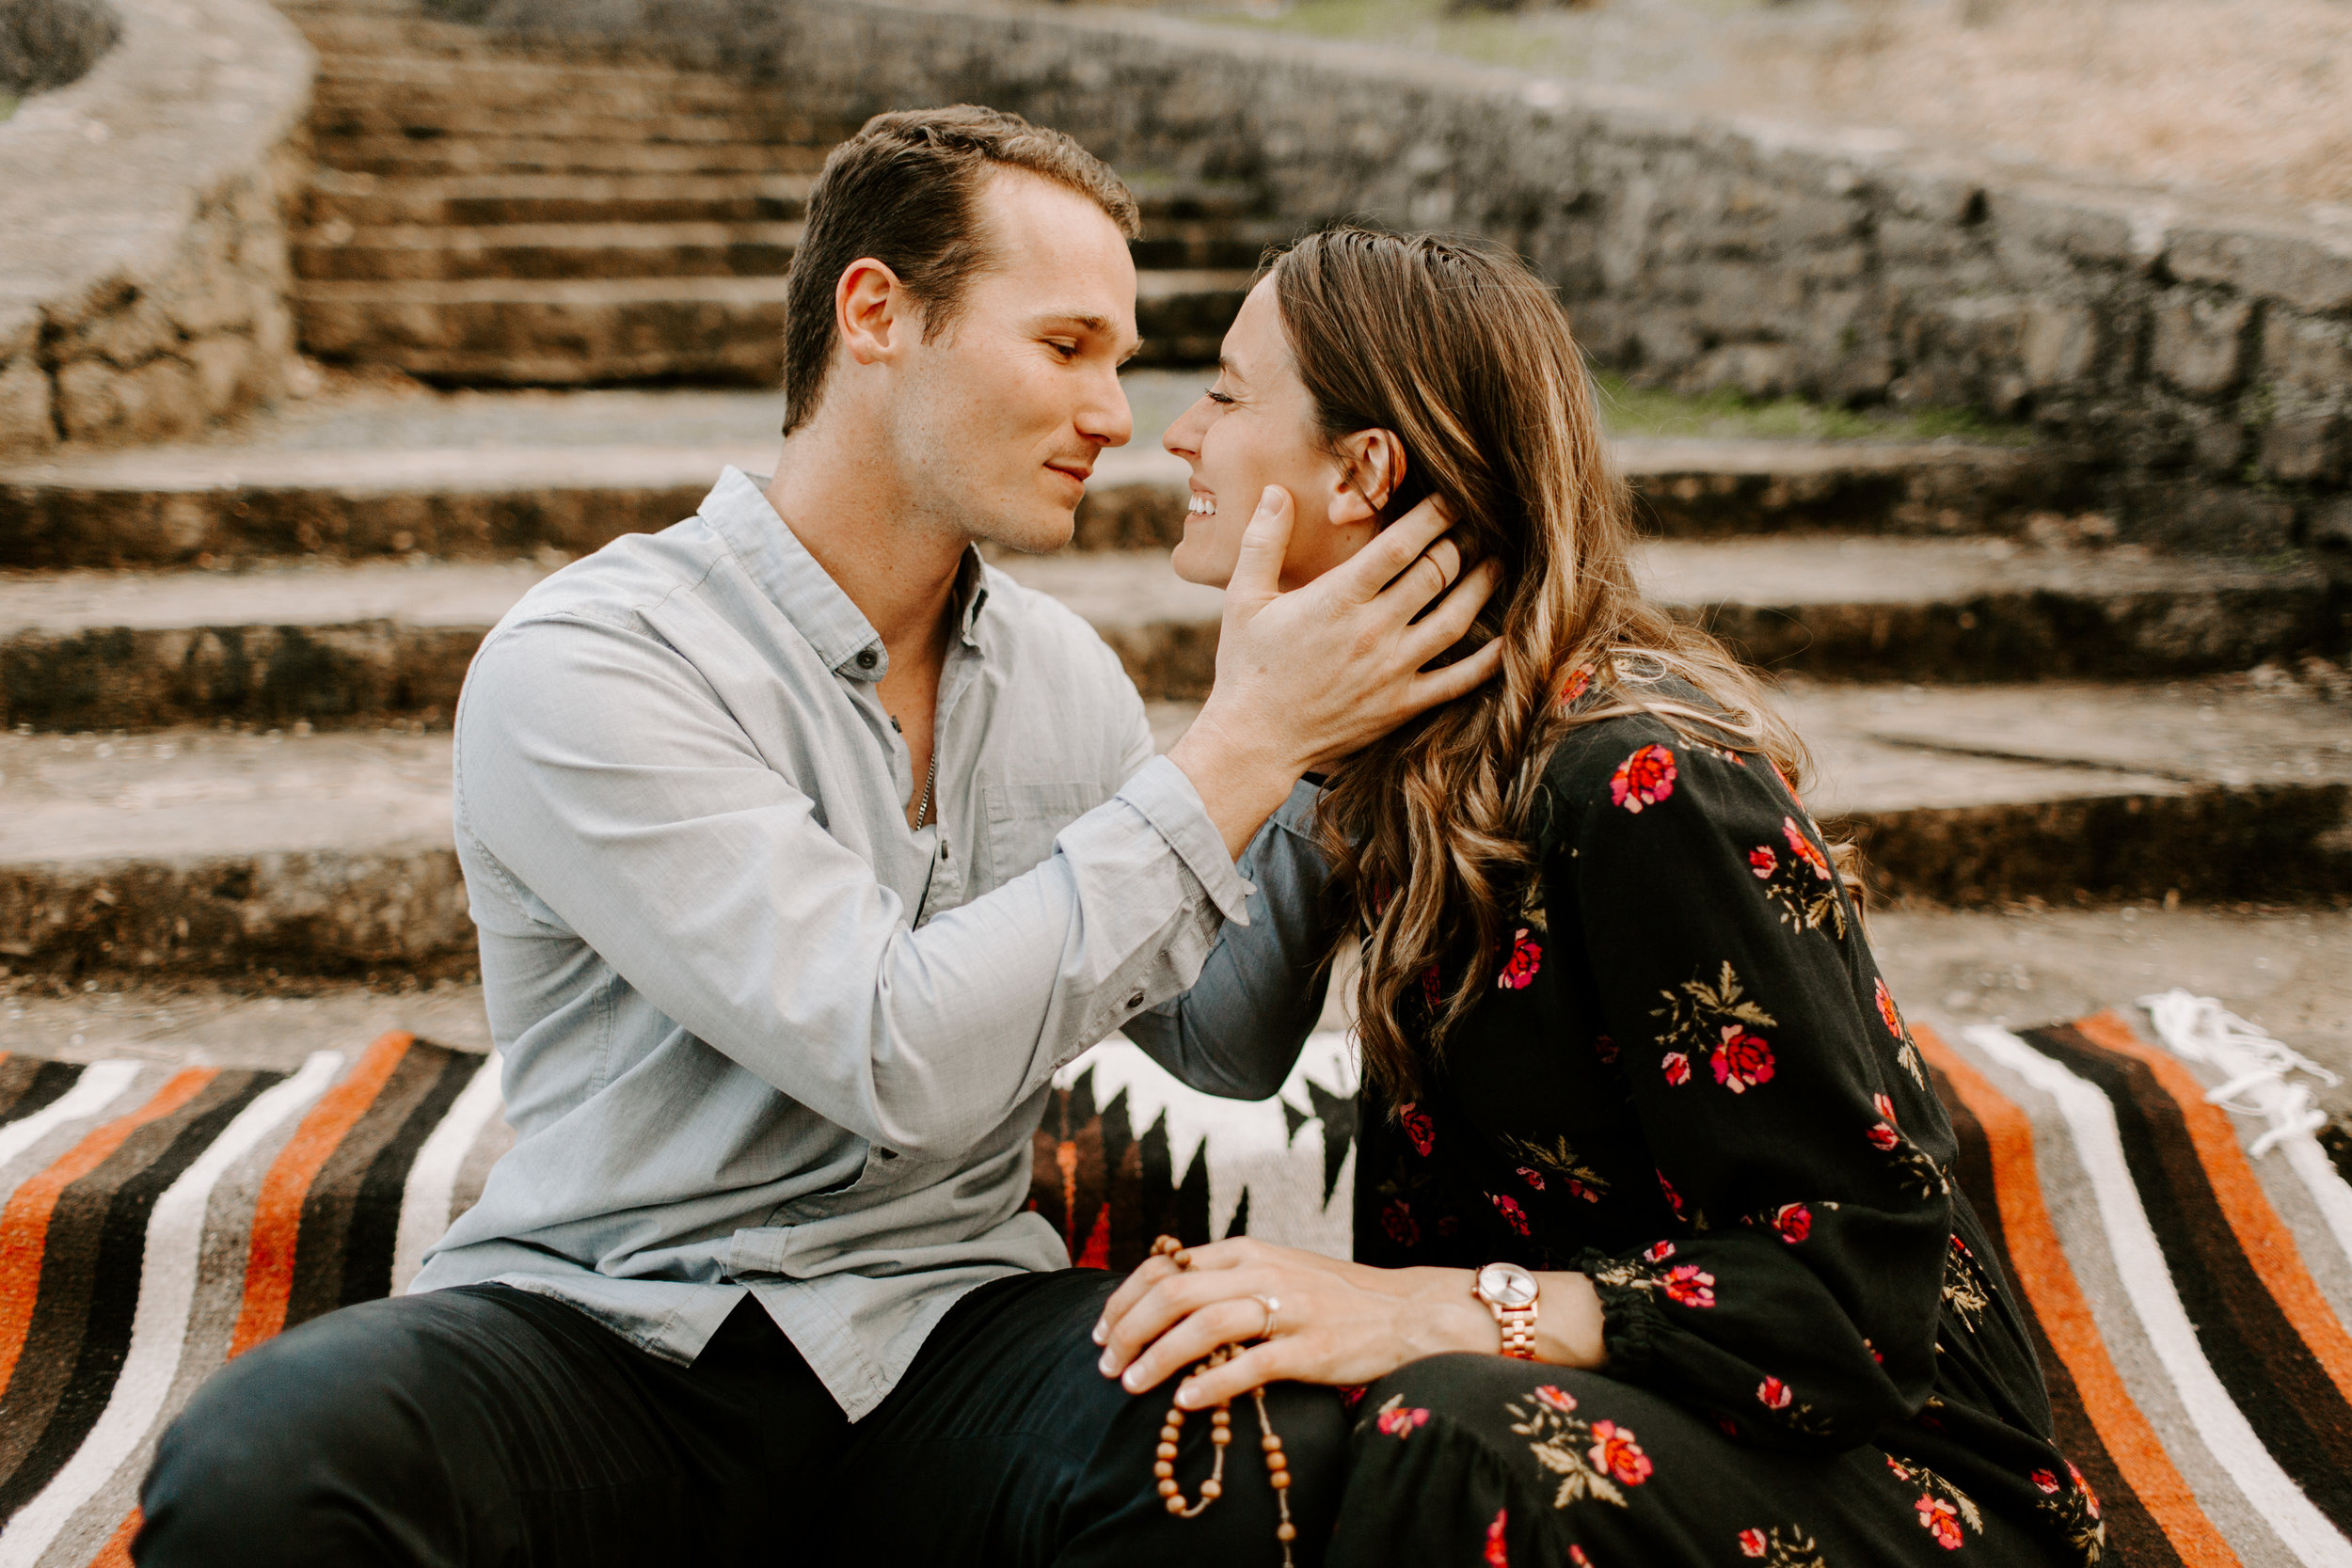 2018.03.16_kayleematt_nashville_engagement_elissavossphotography_previews_15.jpg